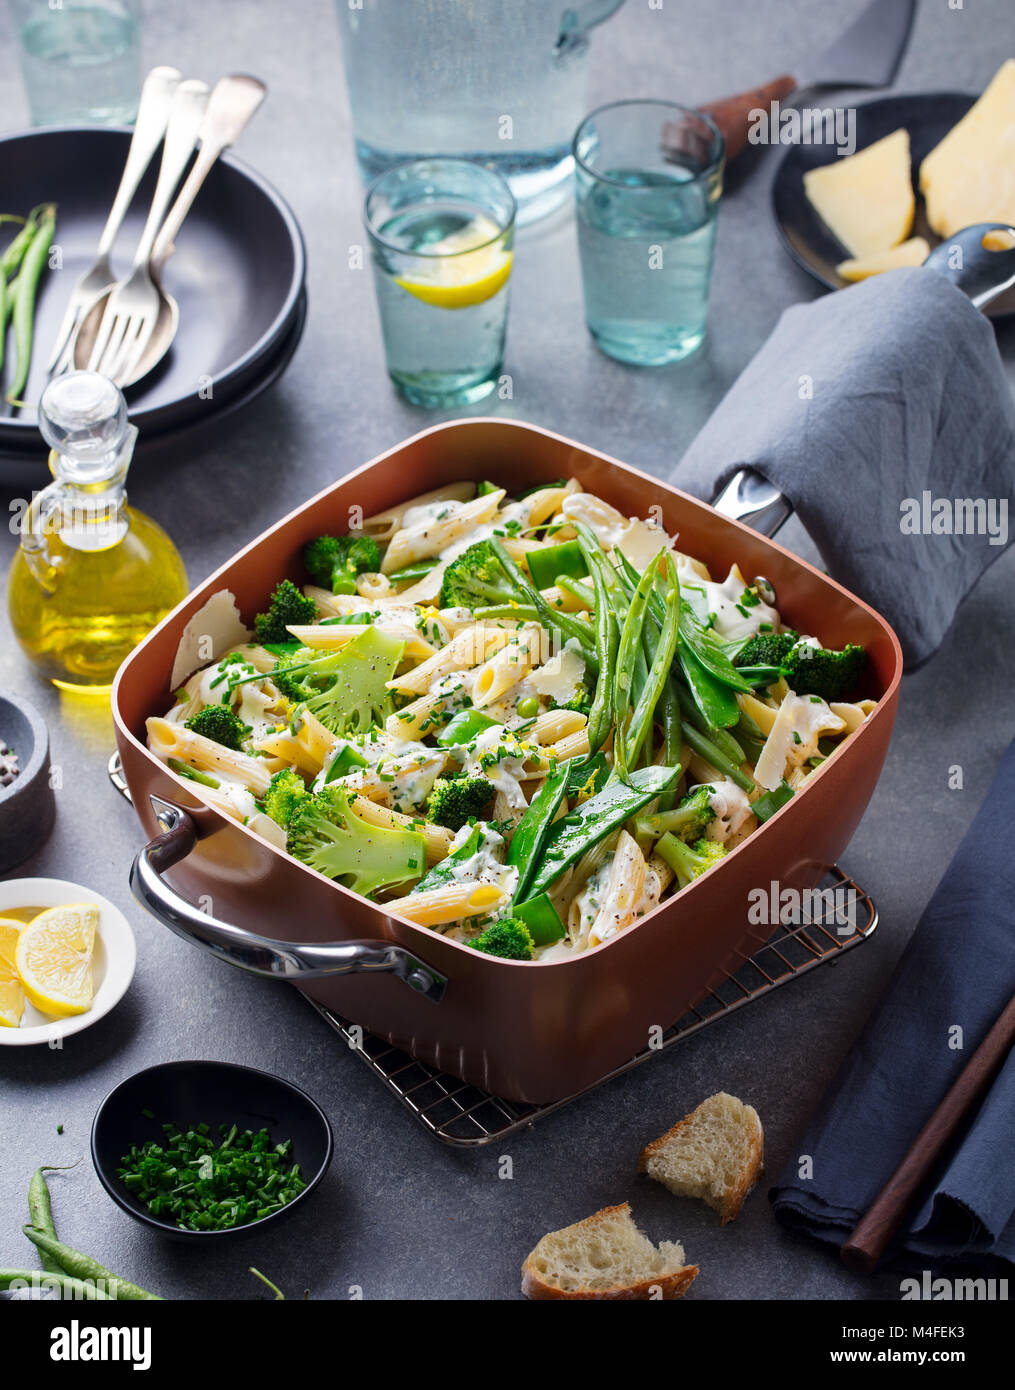 Pasta with green vegetables and creamy sauce - Stock Image